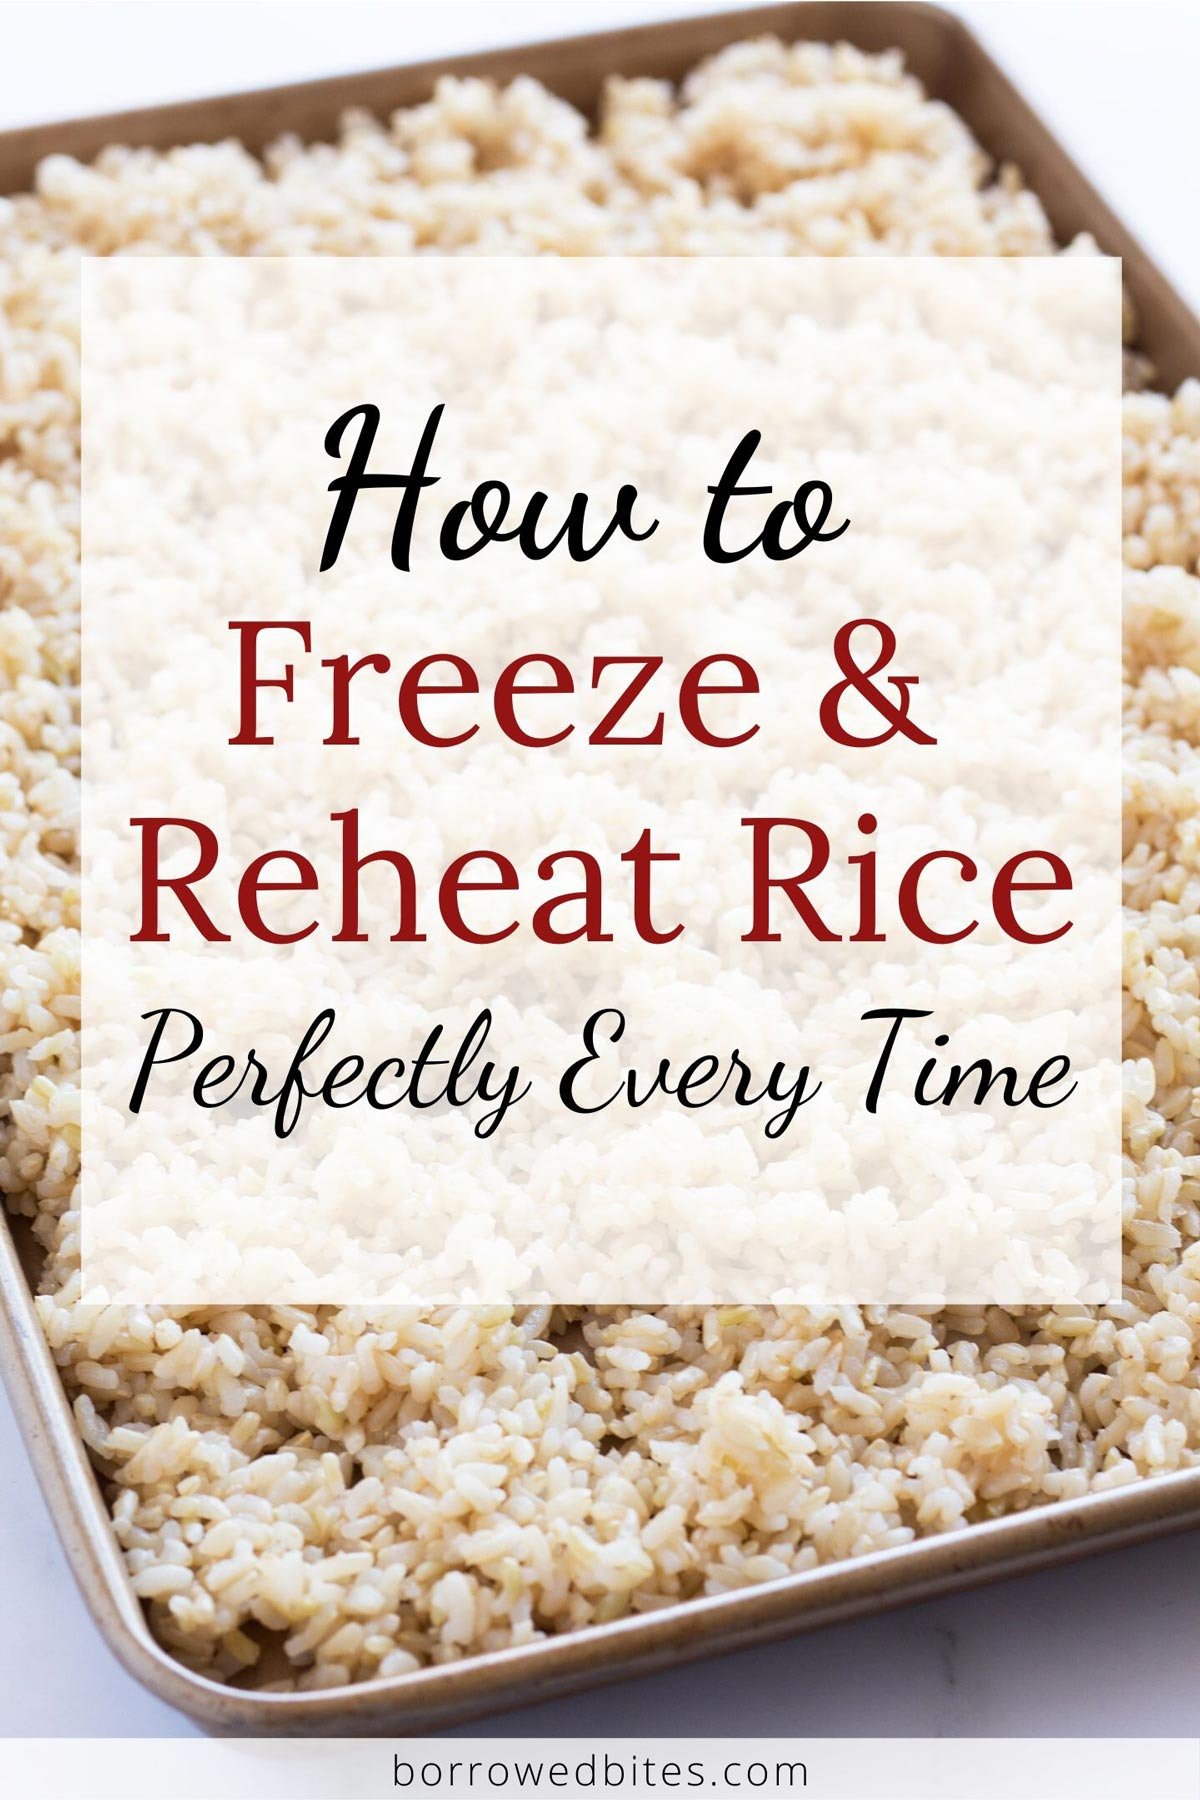 Cooked rice on a sheet pan with text overlay.